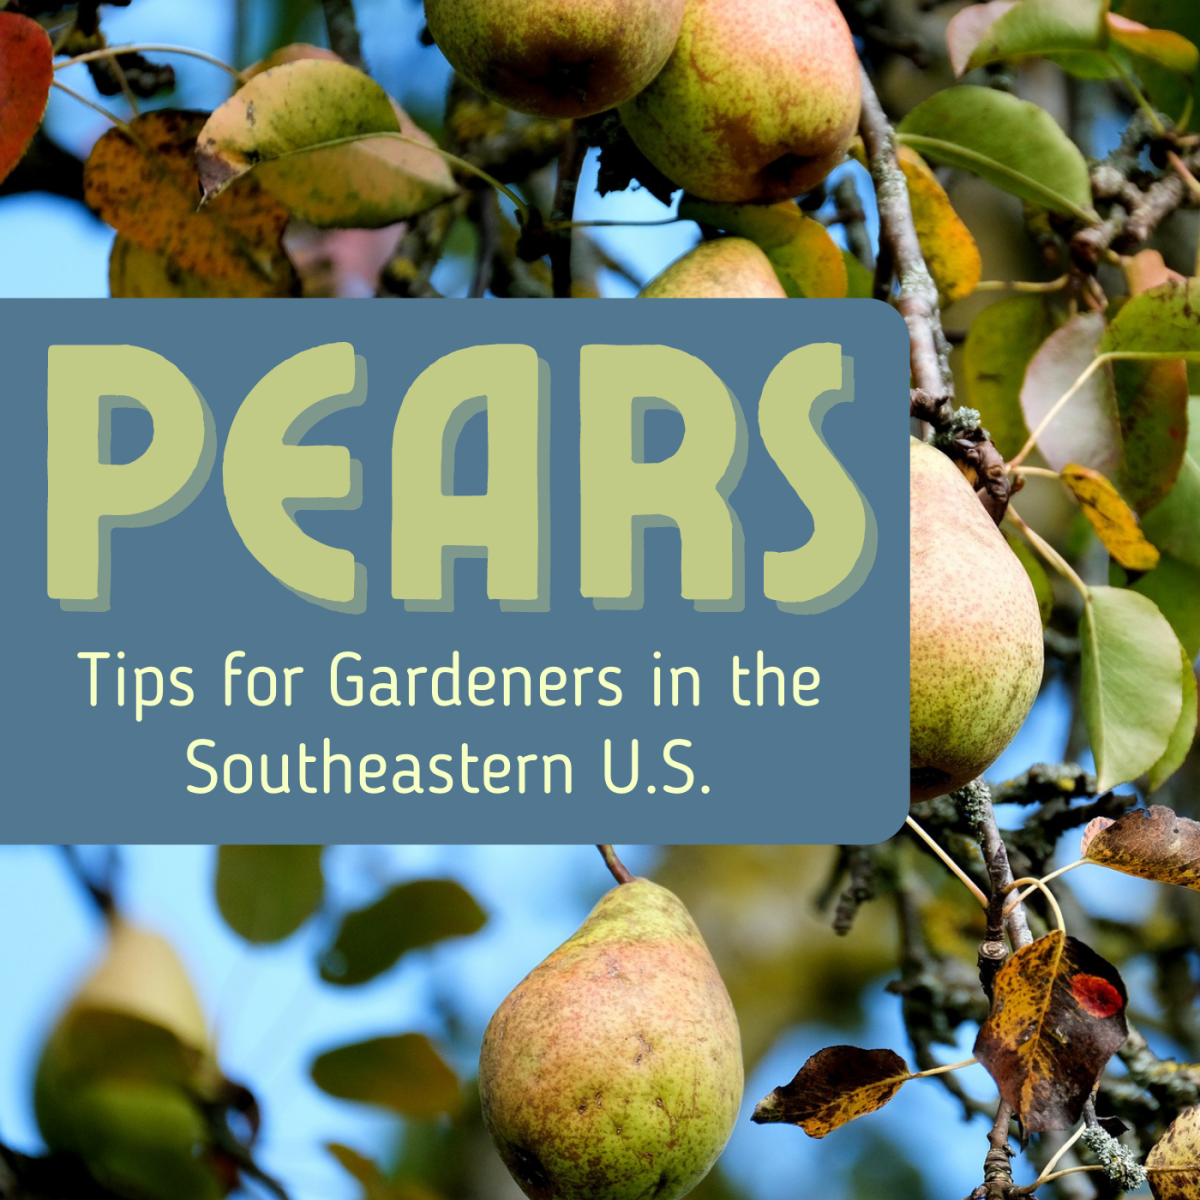 Pears can be tricky to grow. Get advice on soil requirements, pruning, training, pollination, and more.